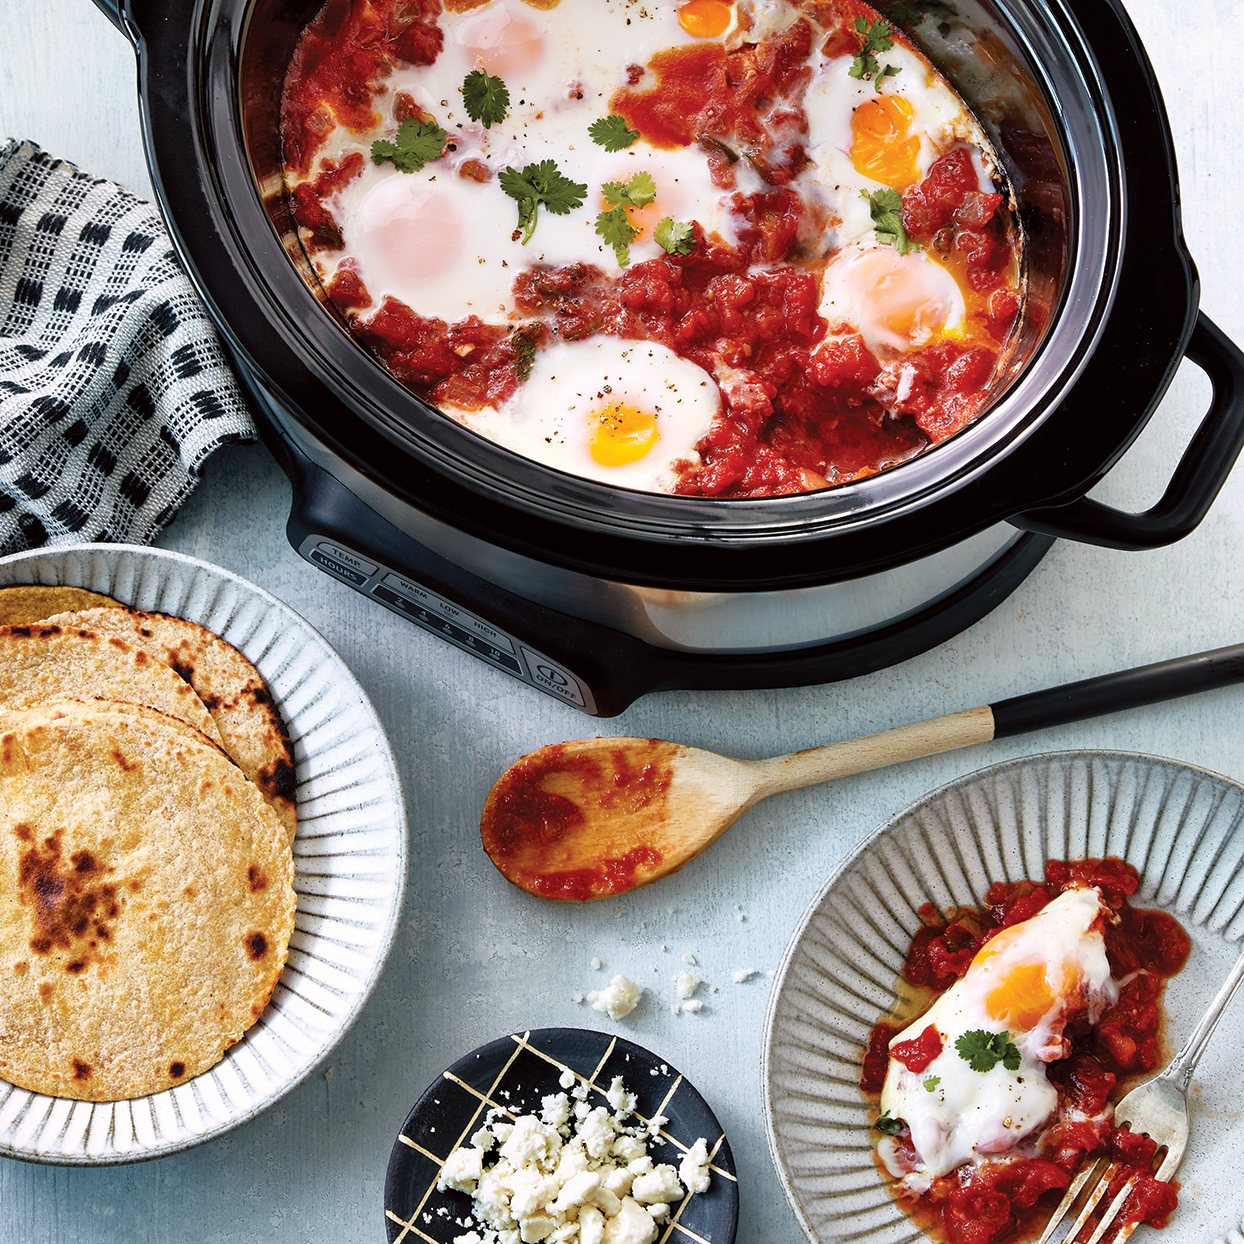 Start your day with hearty, slightly spicy shakshuka full of Southwestern flavor. To avoid one large egg blob on top, be sure to make wells in the sauce using a spoon. It's important to use corn tortillas and not flour tortillas if you're going gluten free. Lightly toast the tortillas, if desired. Source: Everyday Slow Cooker